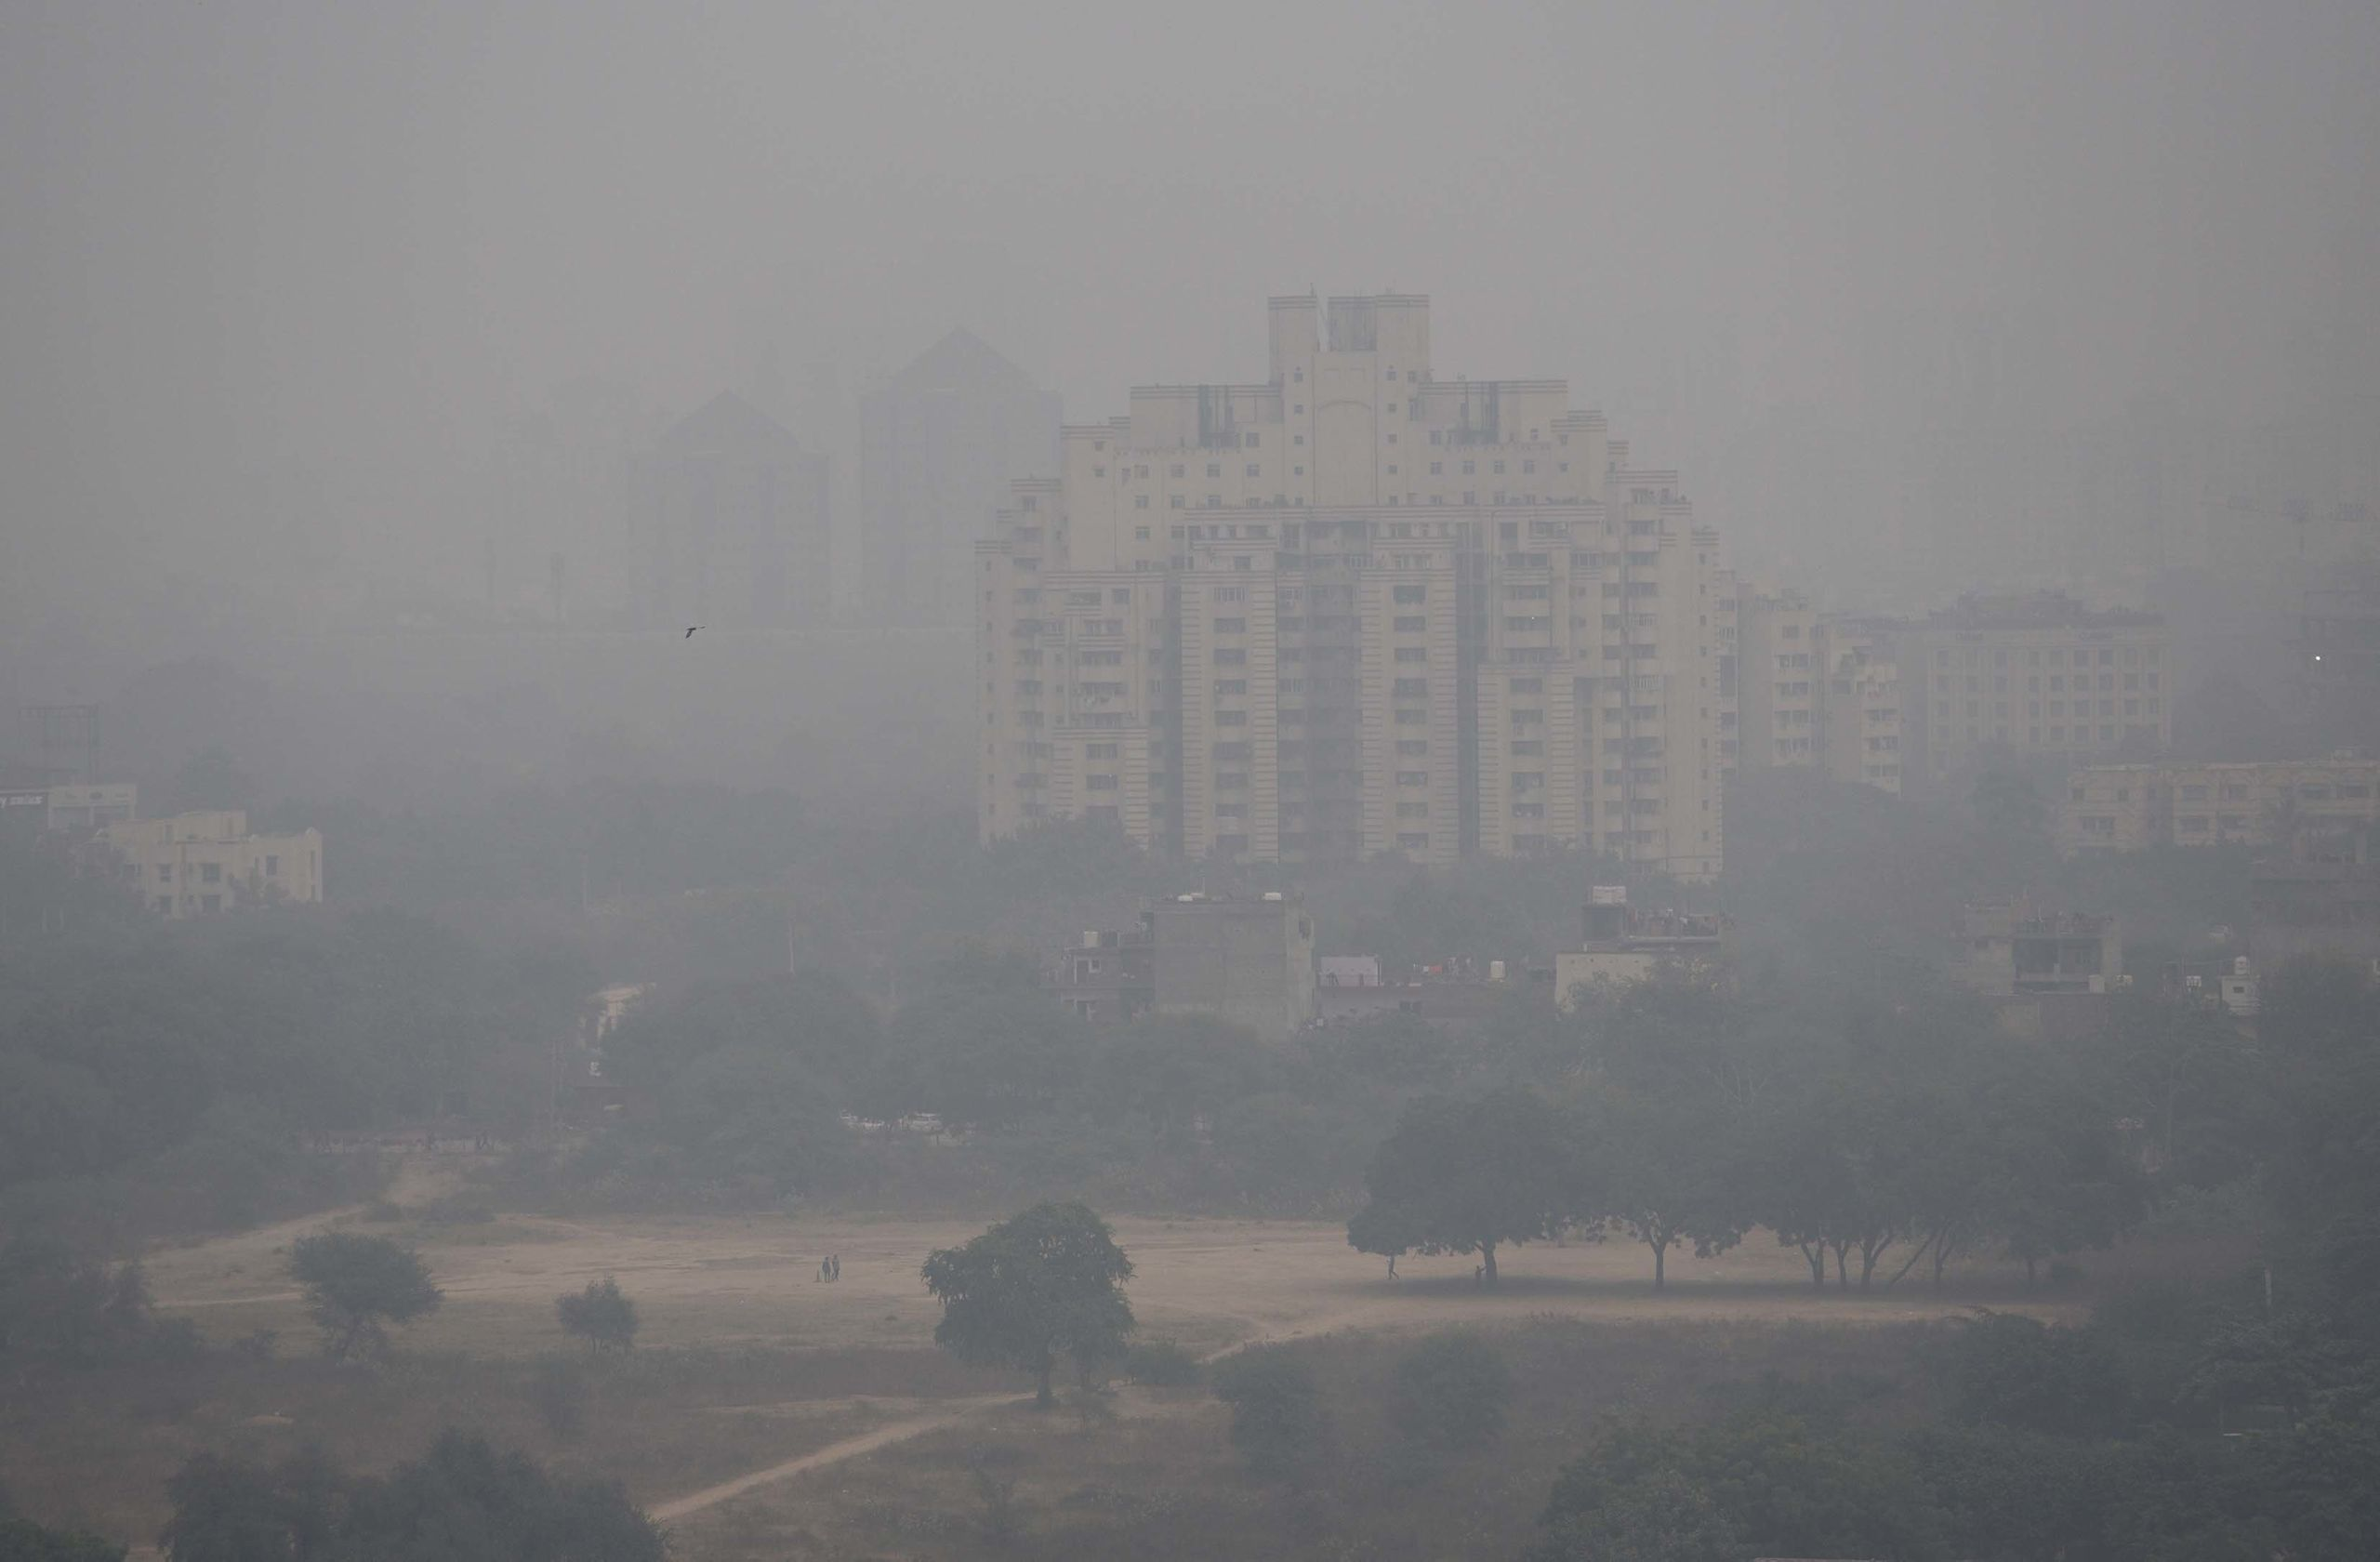 Heavy smog engulfed Gurgaon, India, a city southwest of New Delhi in North India. The air quality index was at 320, which age